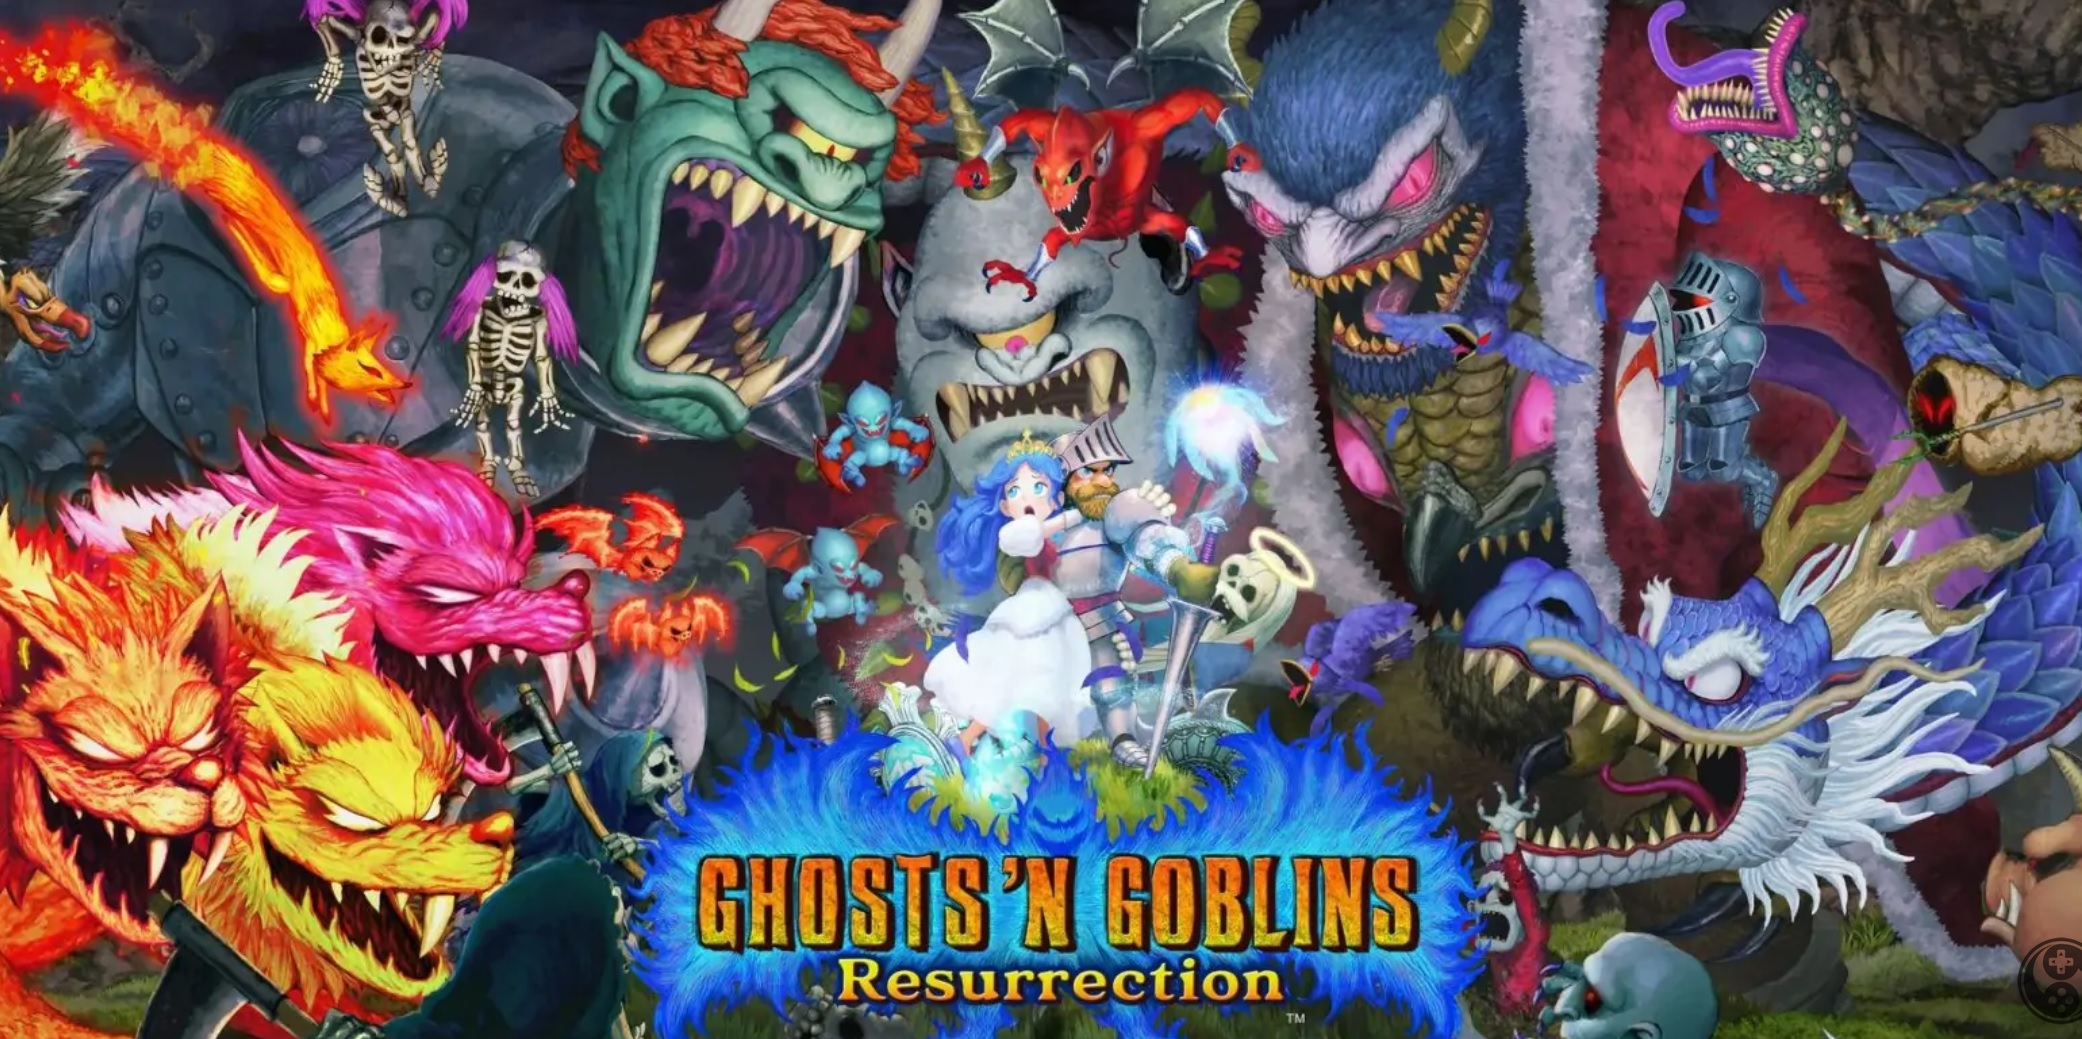 GHOSTS 'N GOBLINS RESURRECTION E CAPCOM ARCADE STADIUM IN ARRIVO SU SWITCH